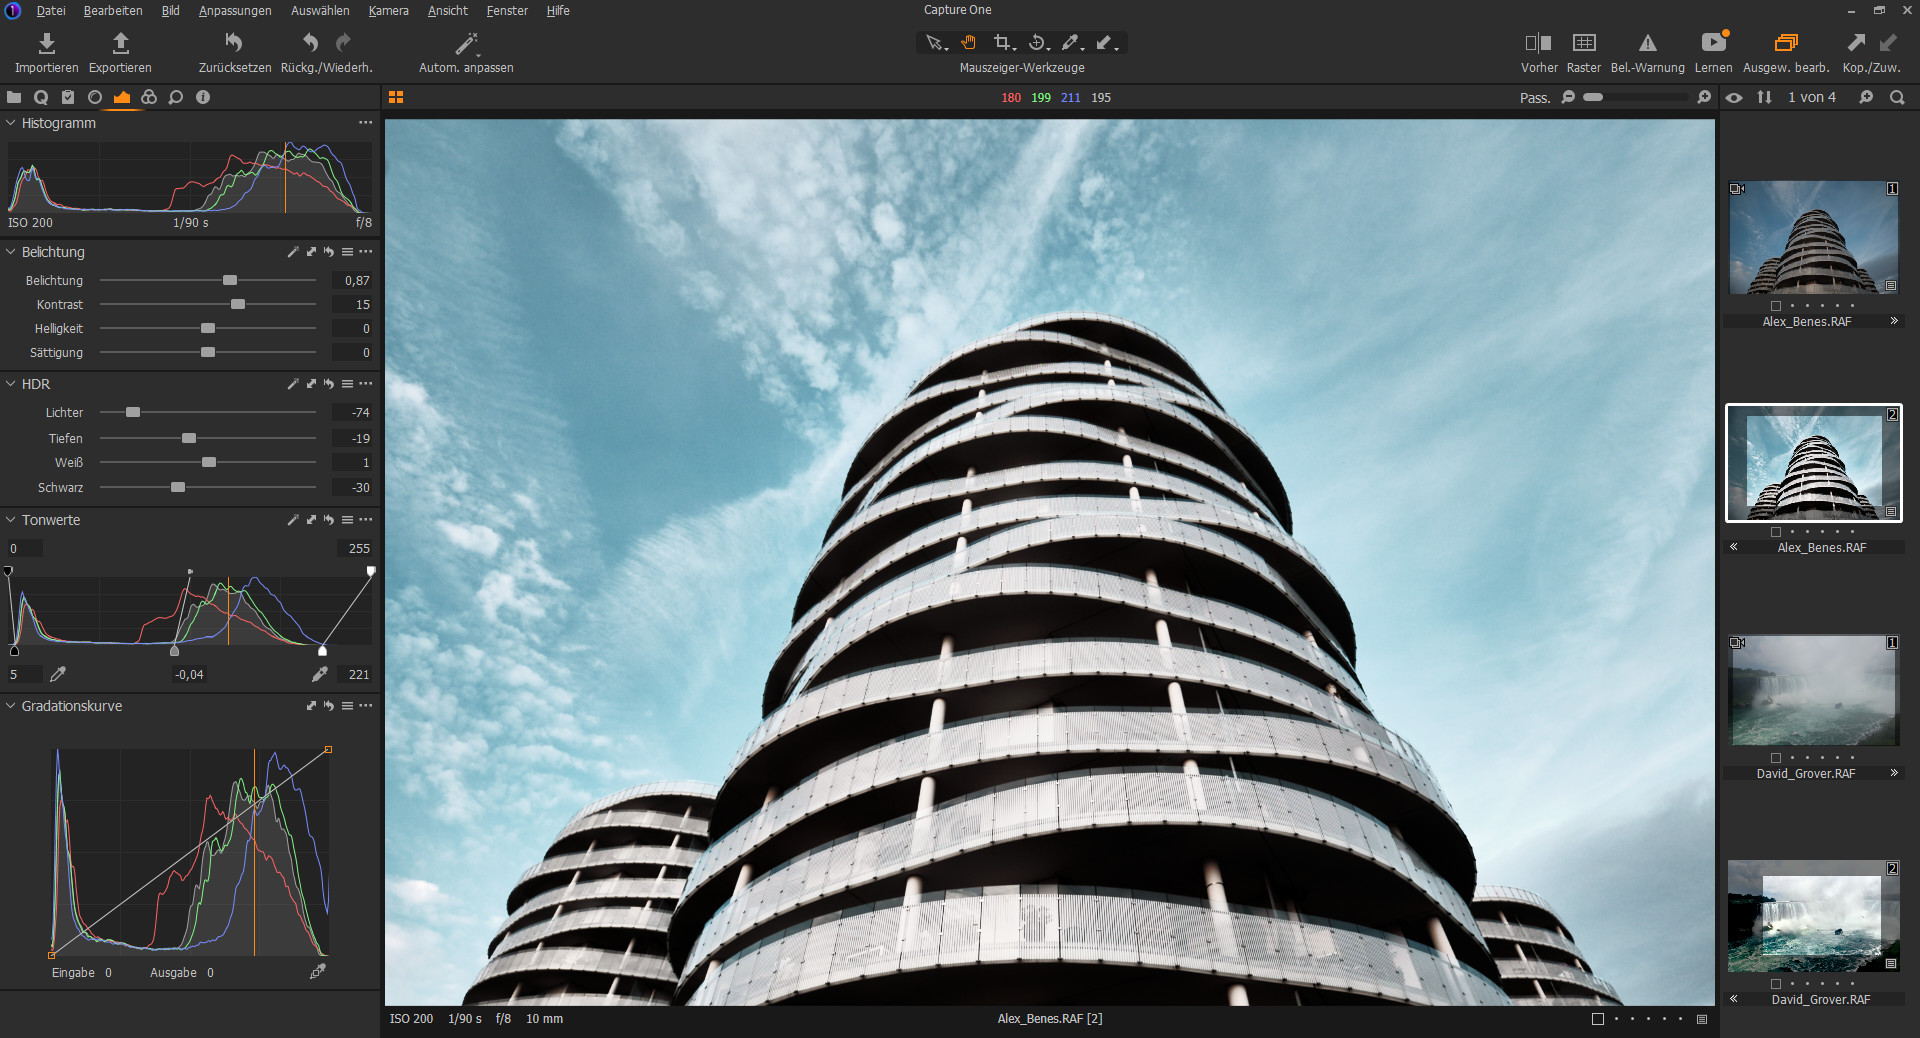 Screenshot 1 - Capture One Express für Fujifilm-Kameras